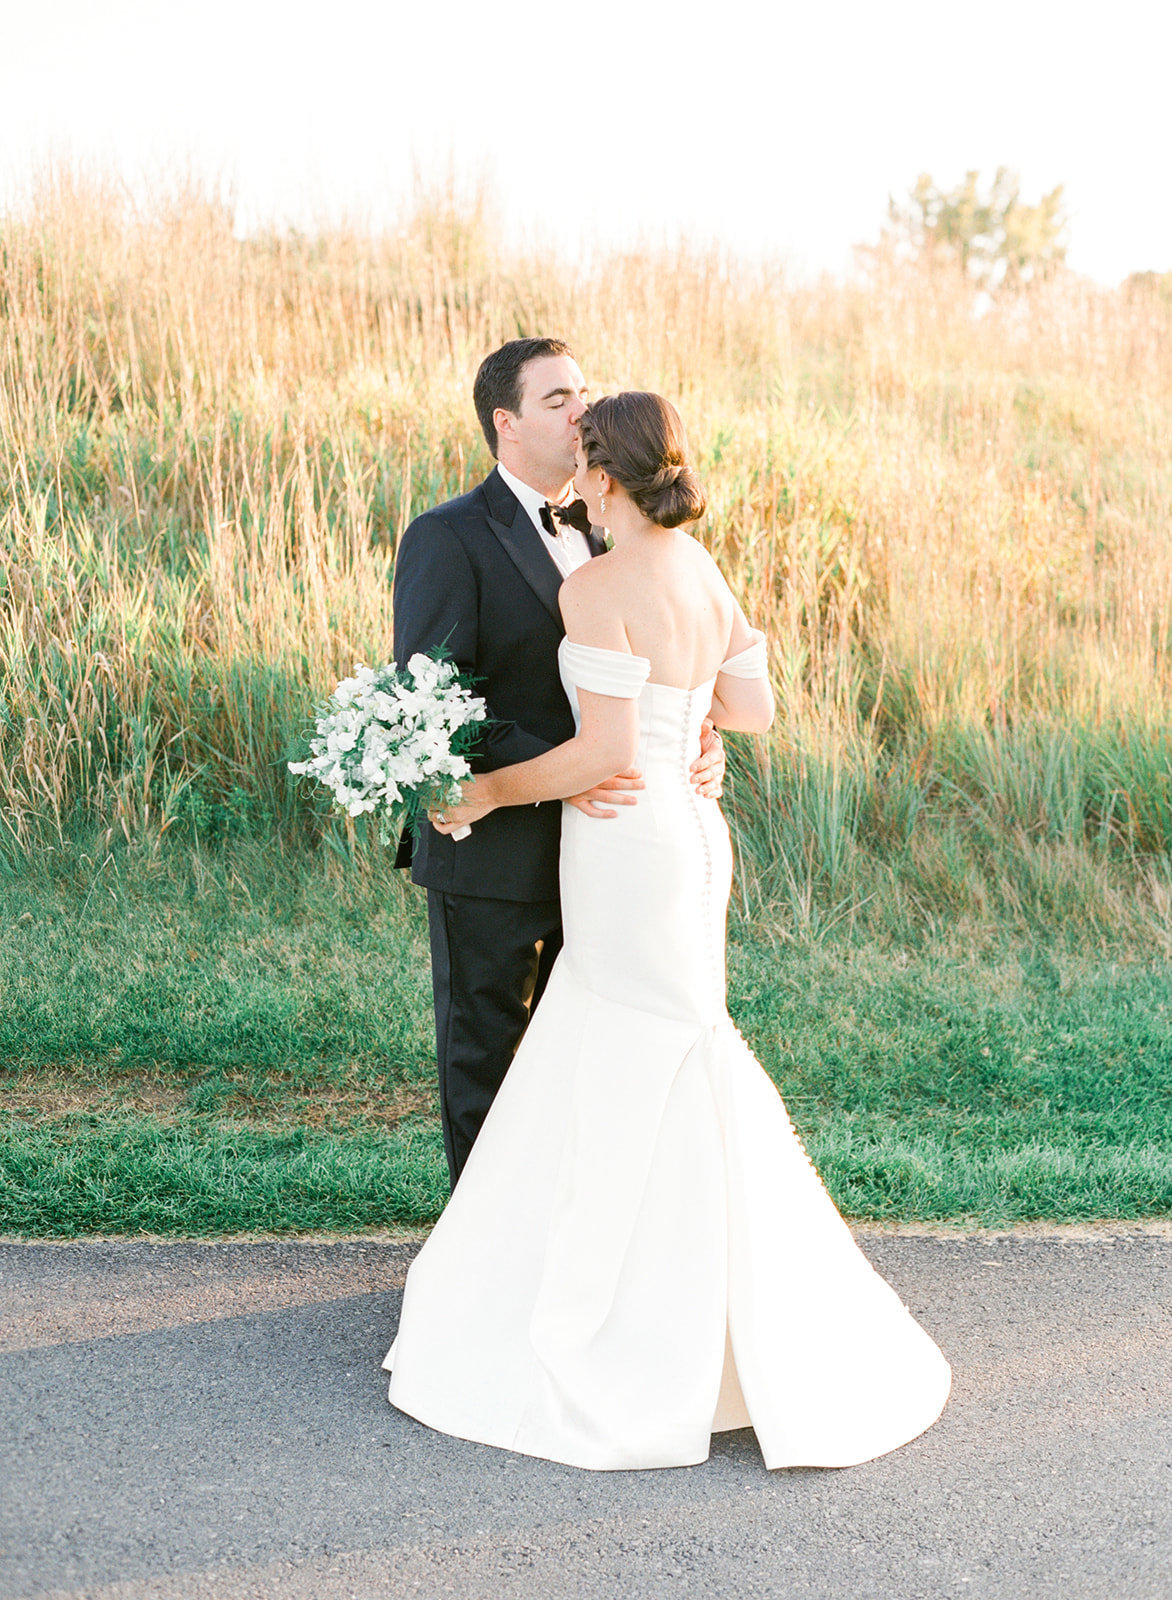 Meg+Greg_Wedding-706